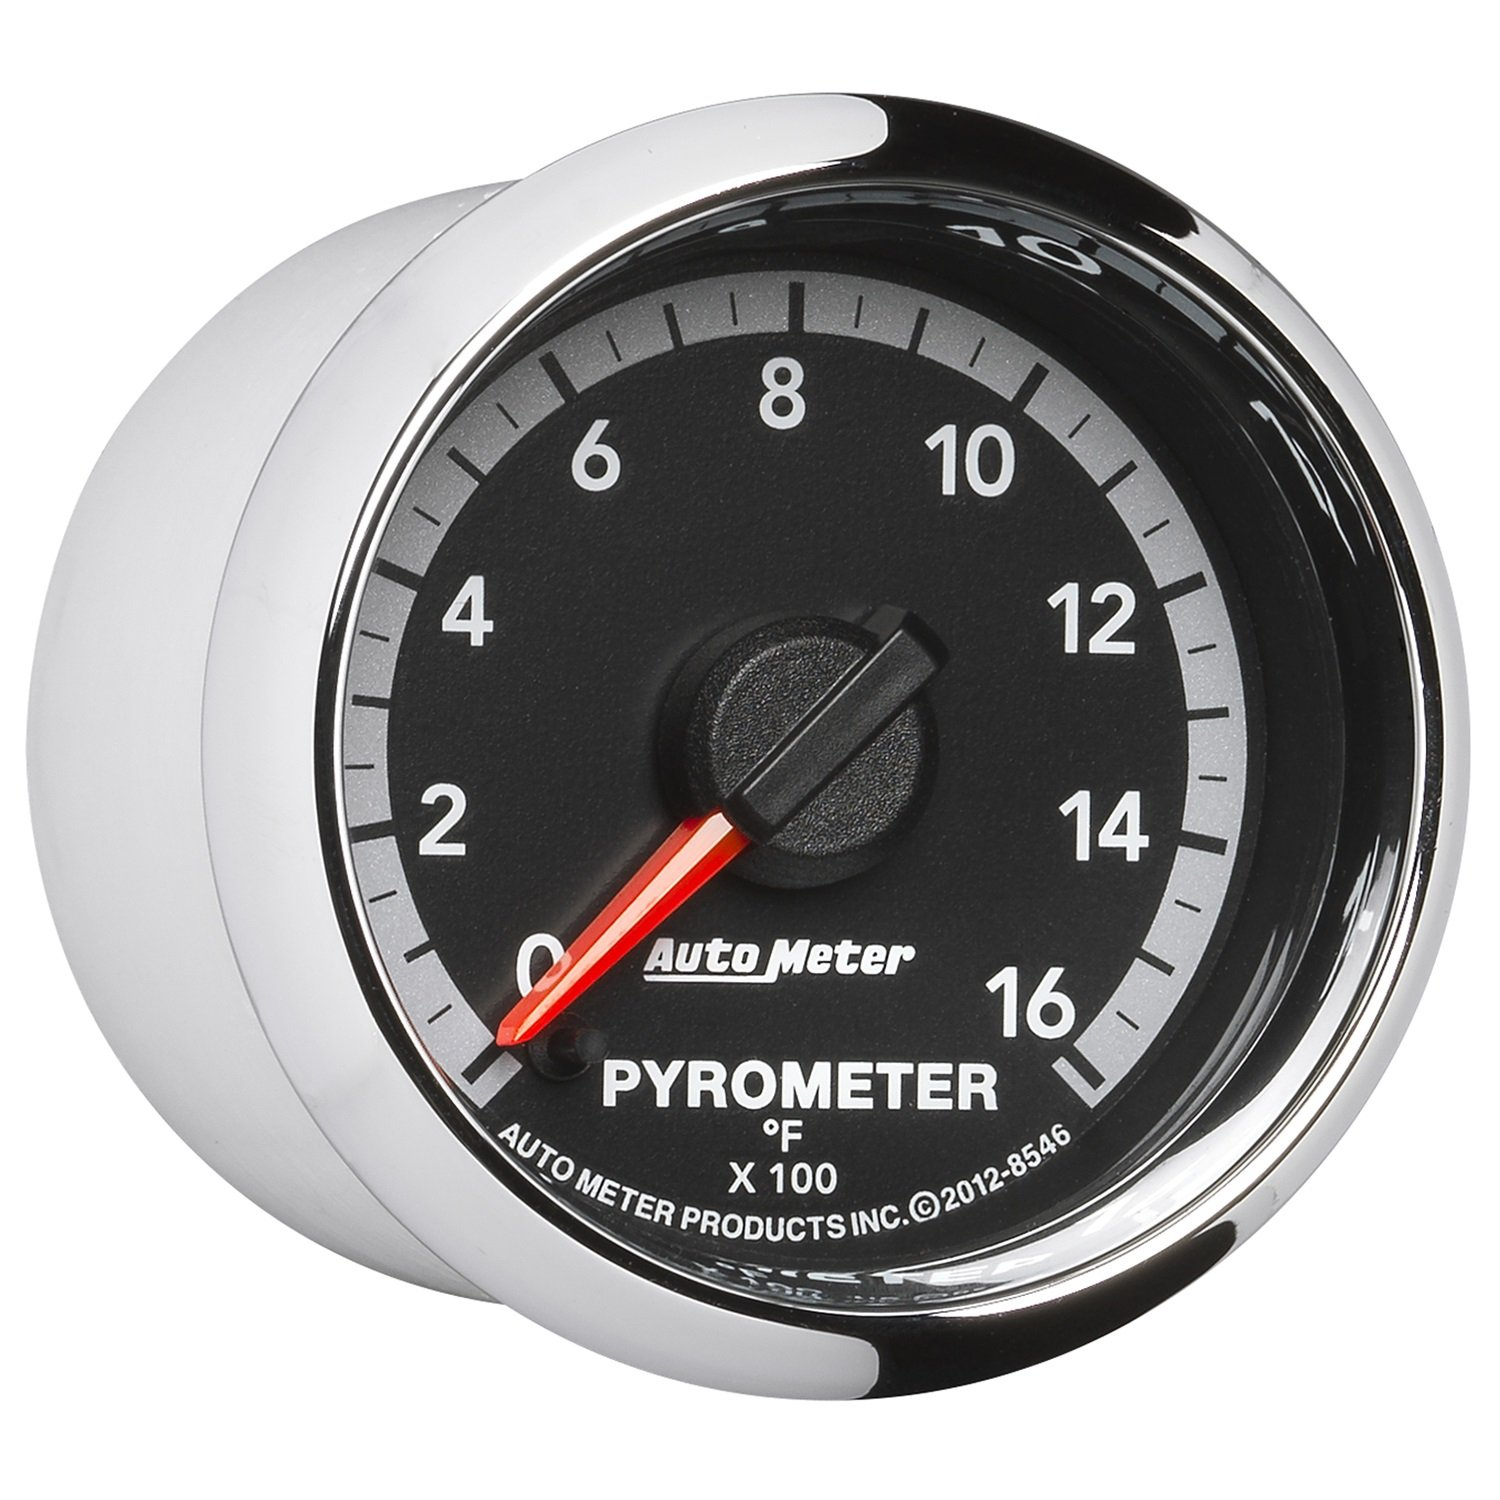 Auto Meter 8546 Factory Match 2-1/16'' Electric Pyrometer (0-1600 Degree F, 52.4mm) by Auto Meter (Image #3)